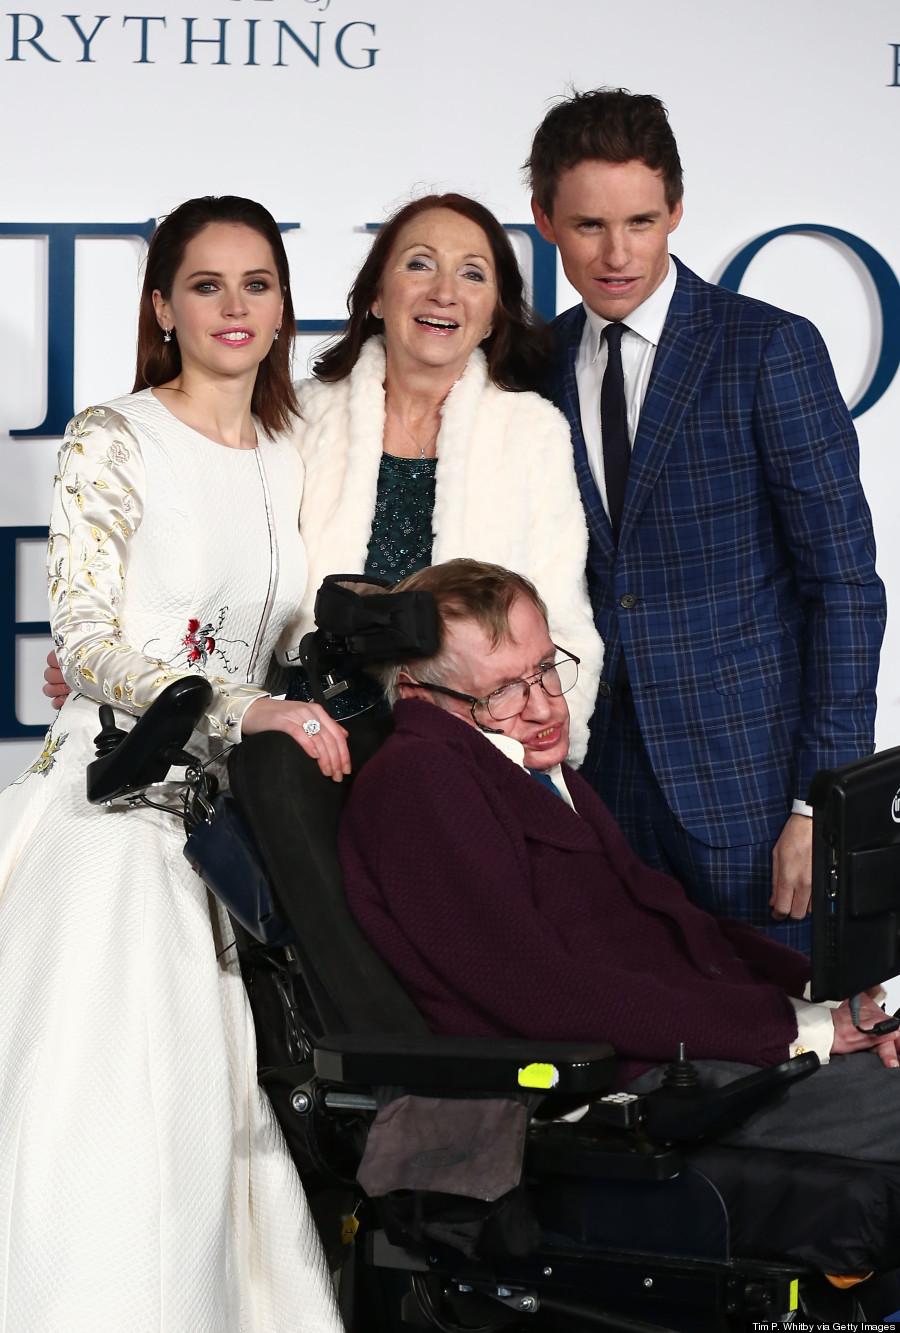 eddie redmayne stephen hawking comparison. stephen hawking eddie redmayne comparison